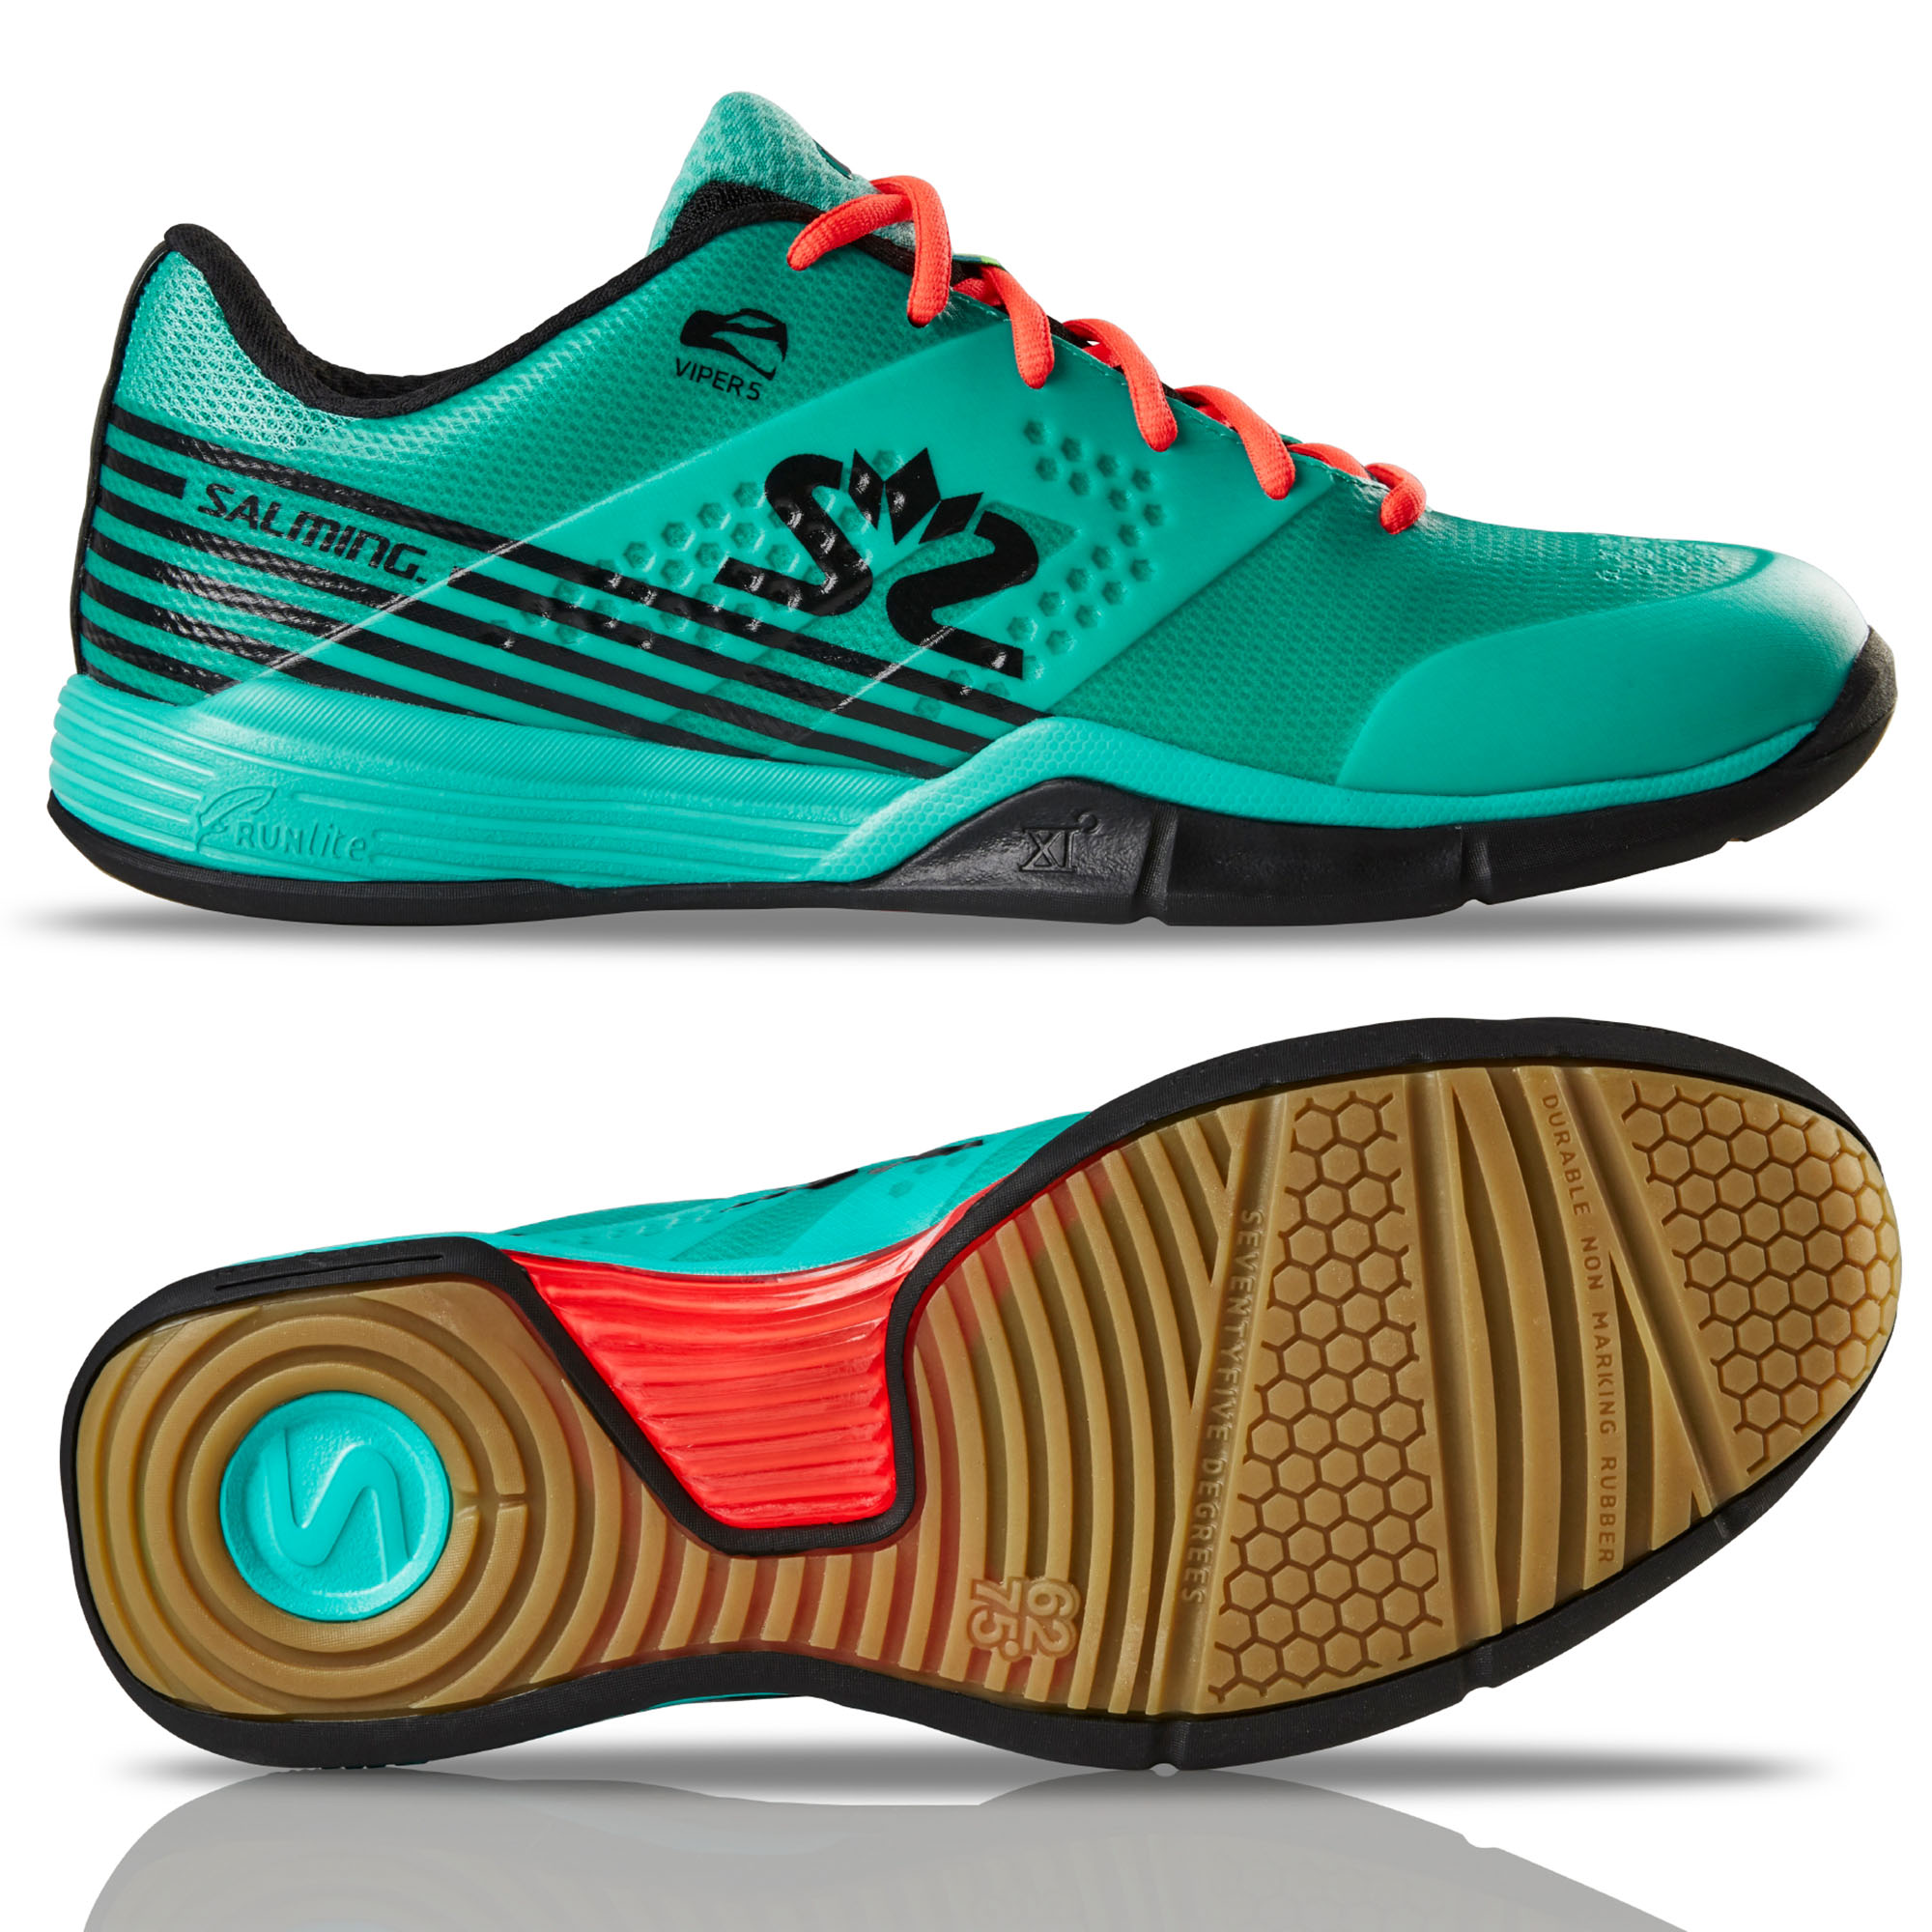 Salming Viper 5 Mens Indoor Court Shoes - Turquoise, 8.5 UK